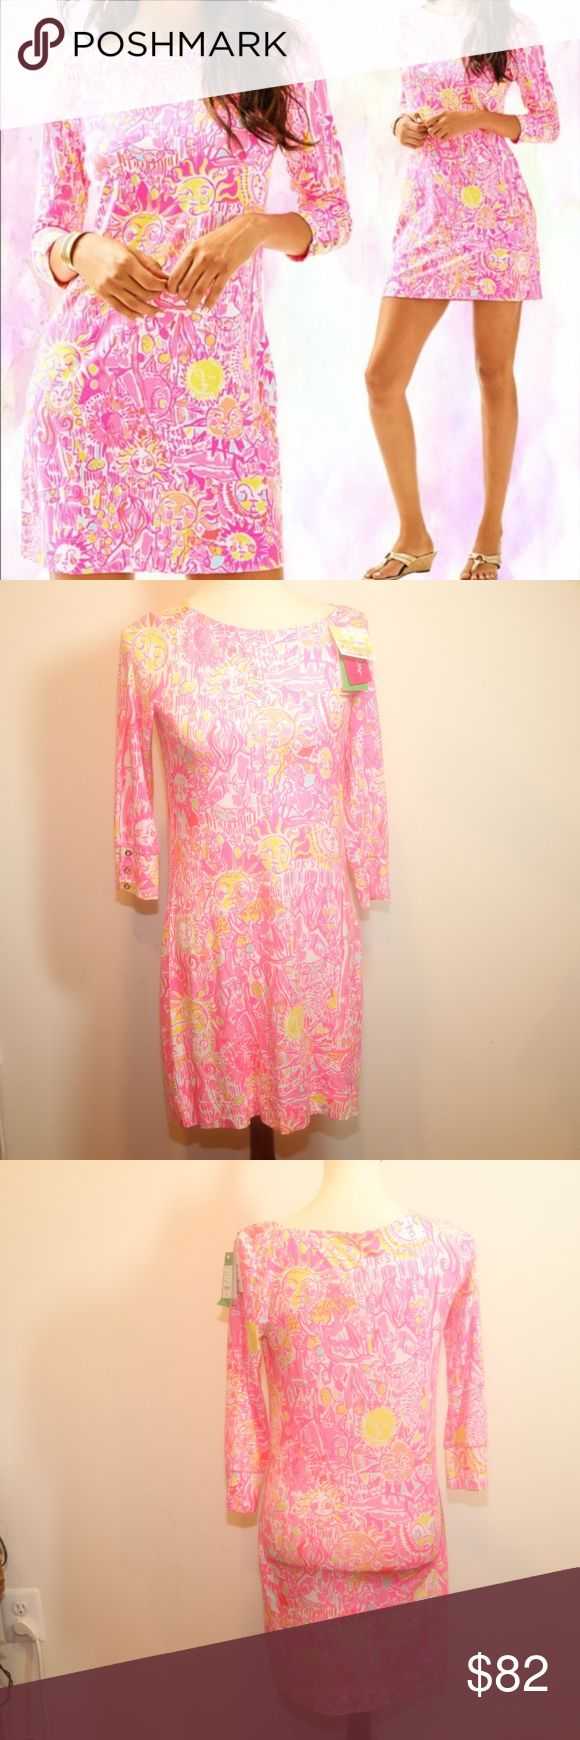 NWT Lilly Pulitzer Sophie Pink Pout Dress Sz S Gorgeous Pink & Yellow NWT Lilly Pulitzer Sophie Pink Pout Dress Sz S Printed Dress With Boat Neckline And Gold Button Detail At Shoulder And Cuff. Rayon Spandex Jersey - Printed (93% Rayon, 7% Lycra). Lilly Pulitzer Dresses Long Sleeve